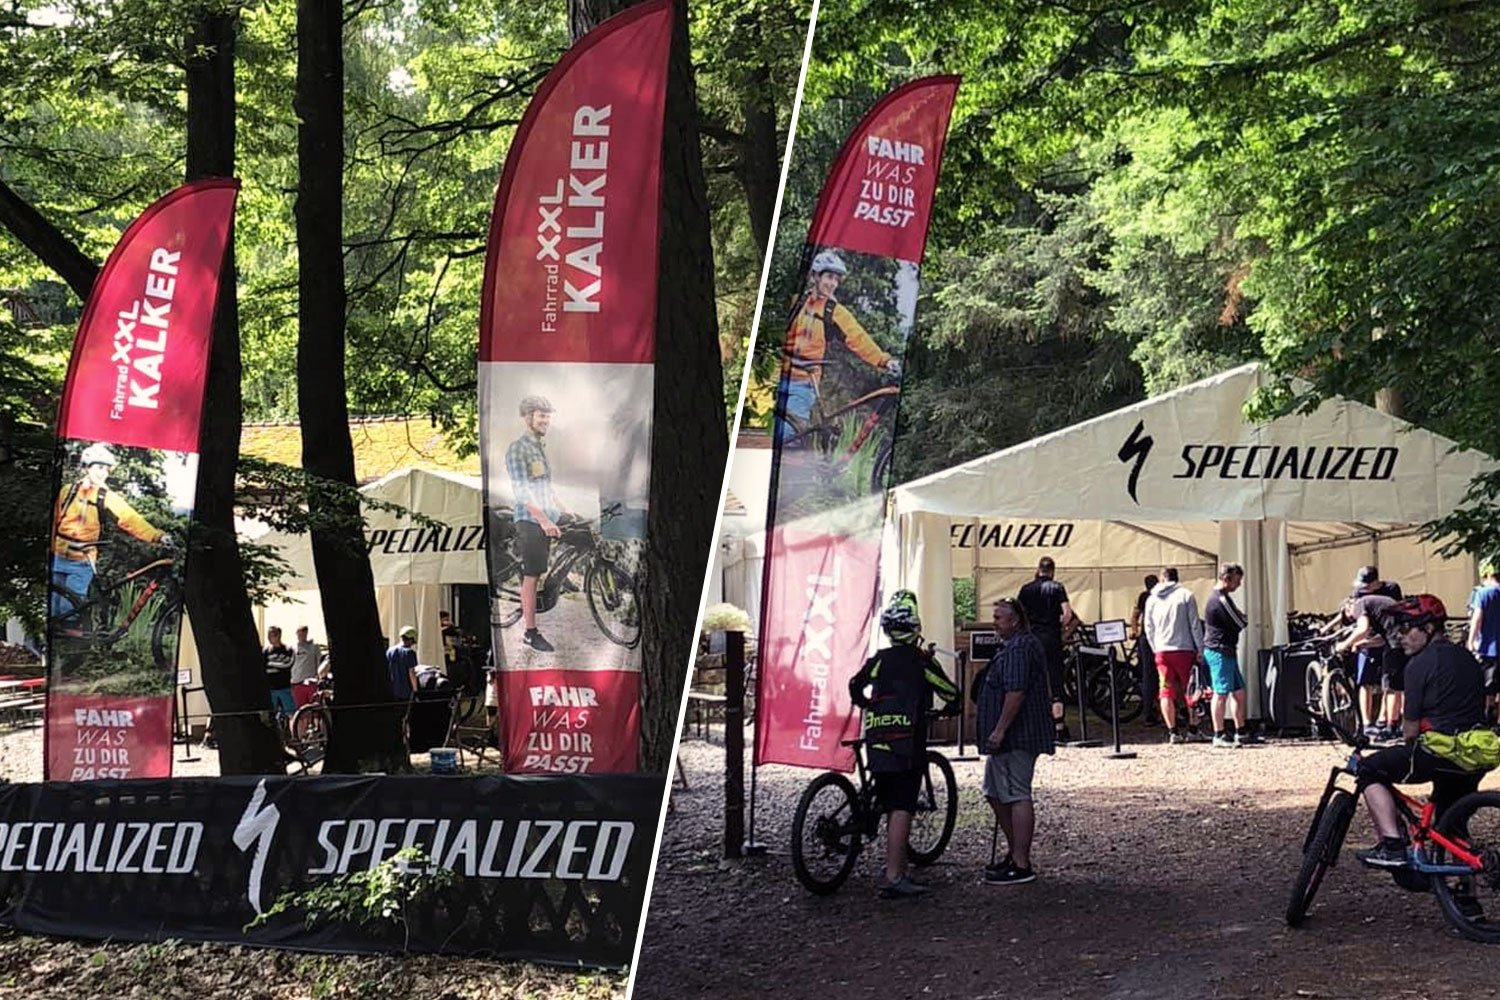 Specialized Test Event by Fahrrad XXL